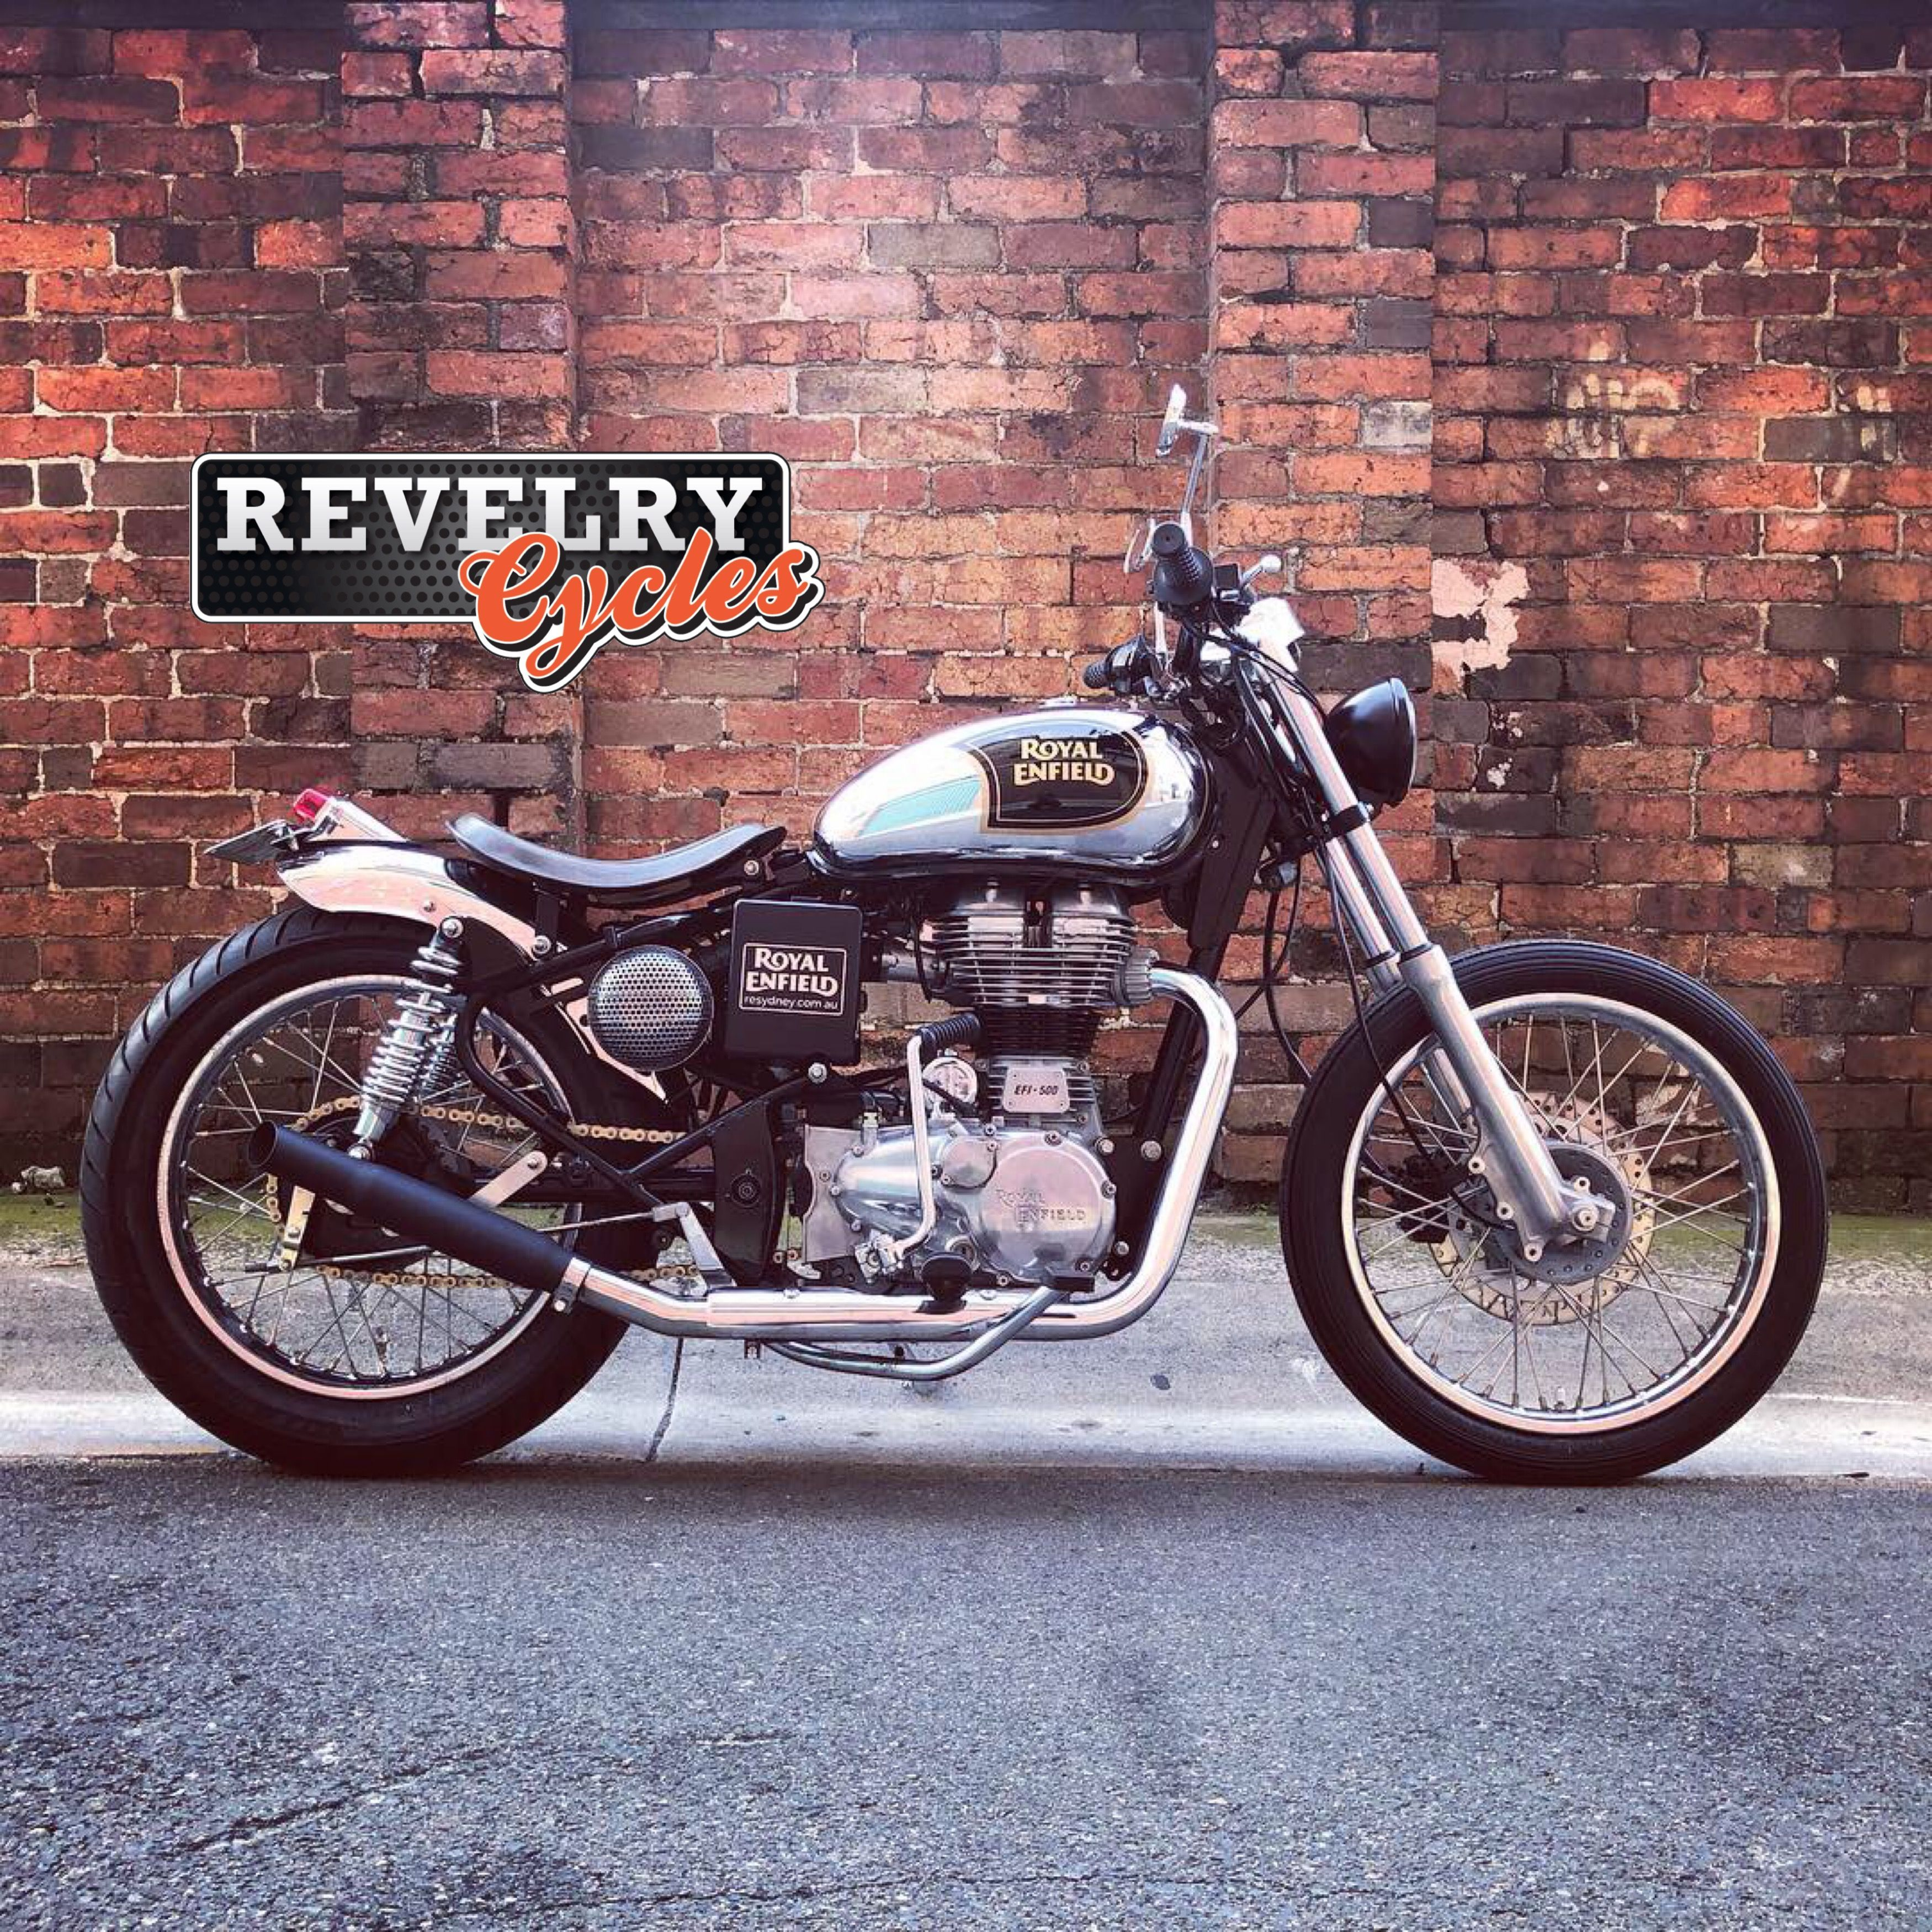 Royal Enfield Classic 500 Bobber Motorcycle Shop Our Latest